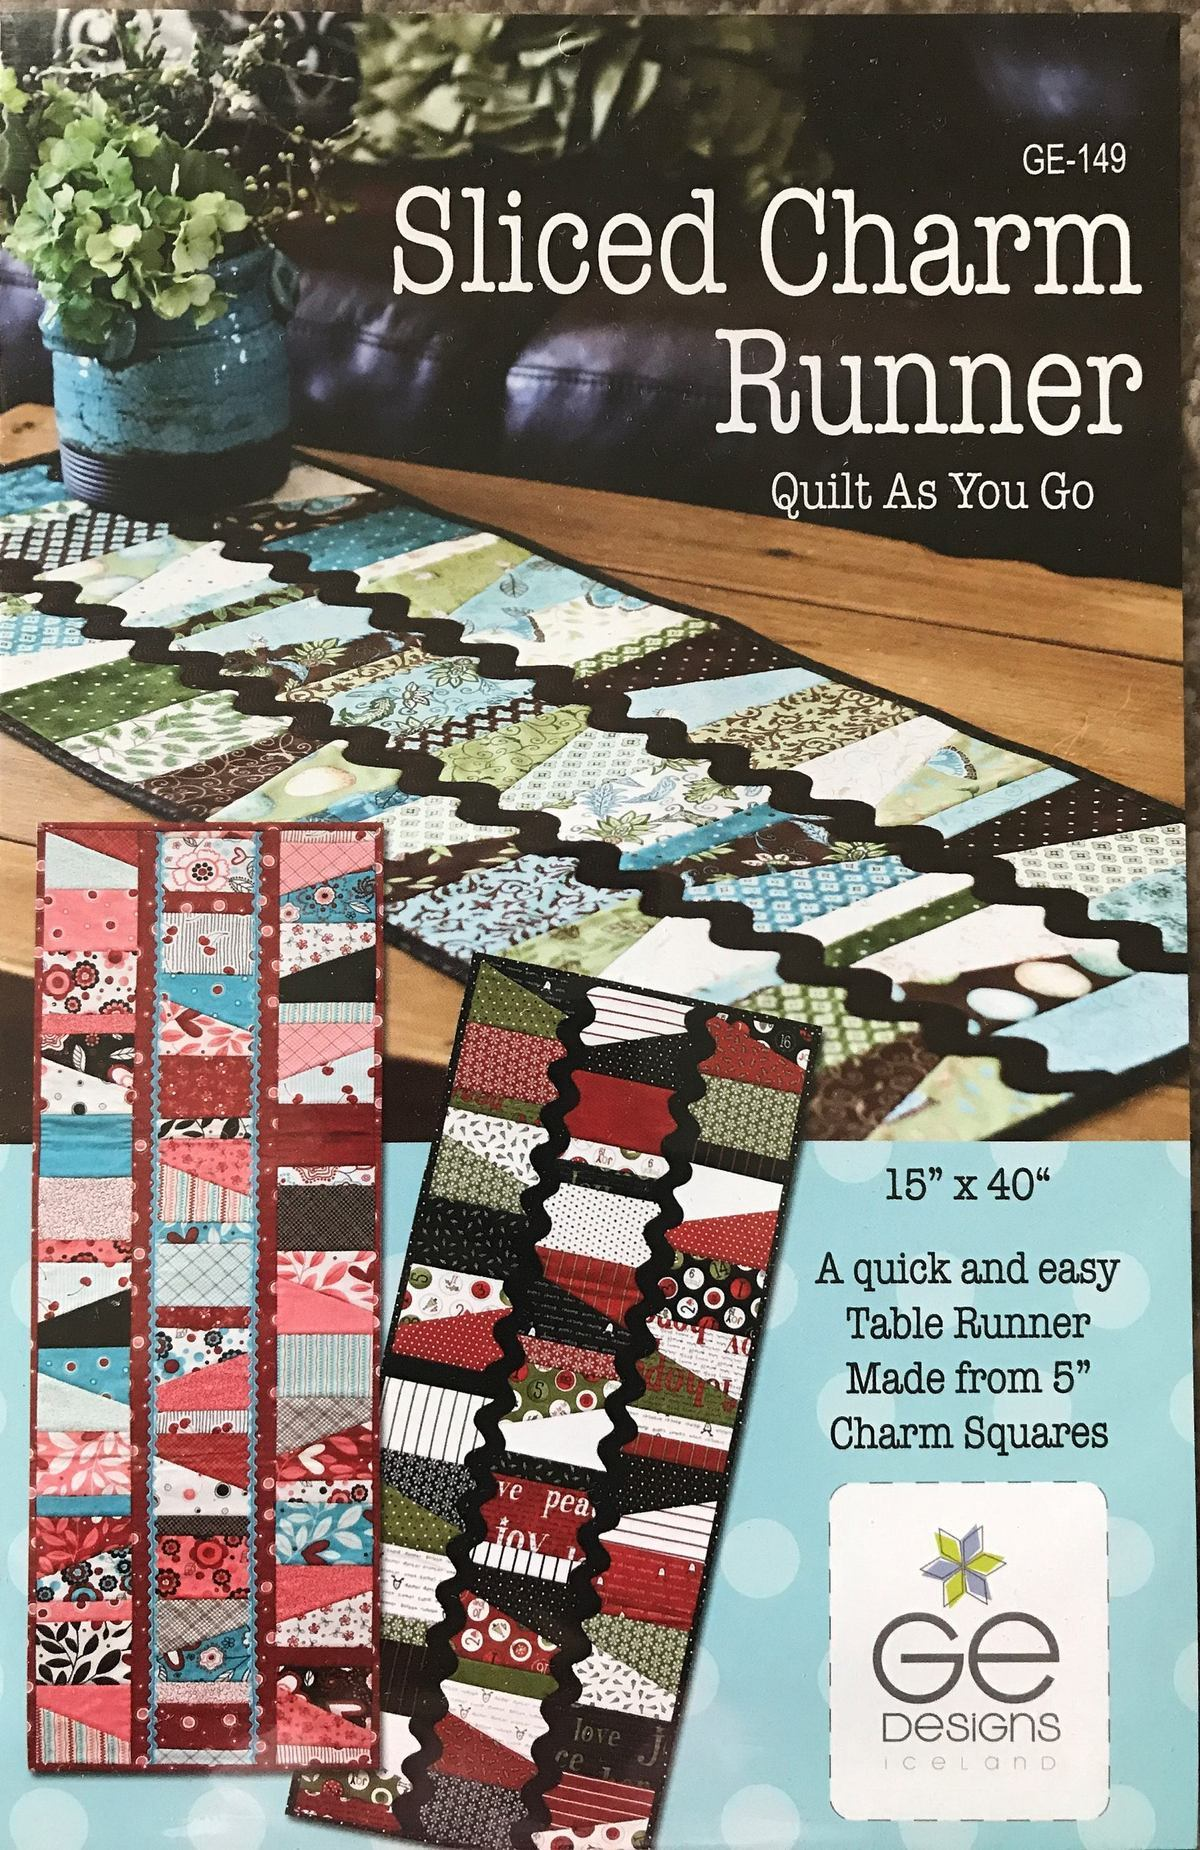 GE Designs Sliced Charm Table Quilt As You Go Table Runner Pattern